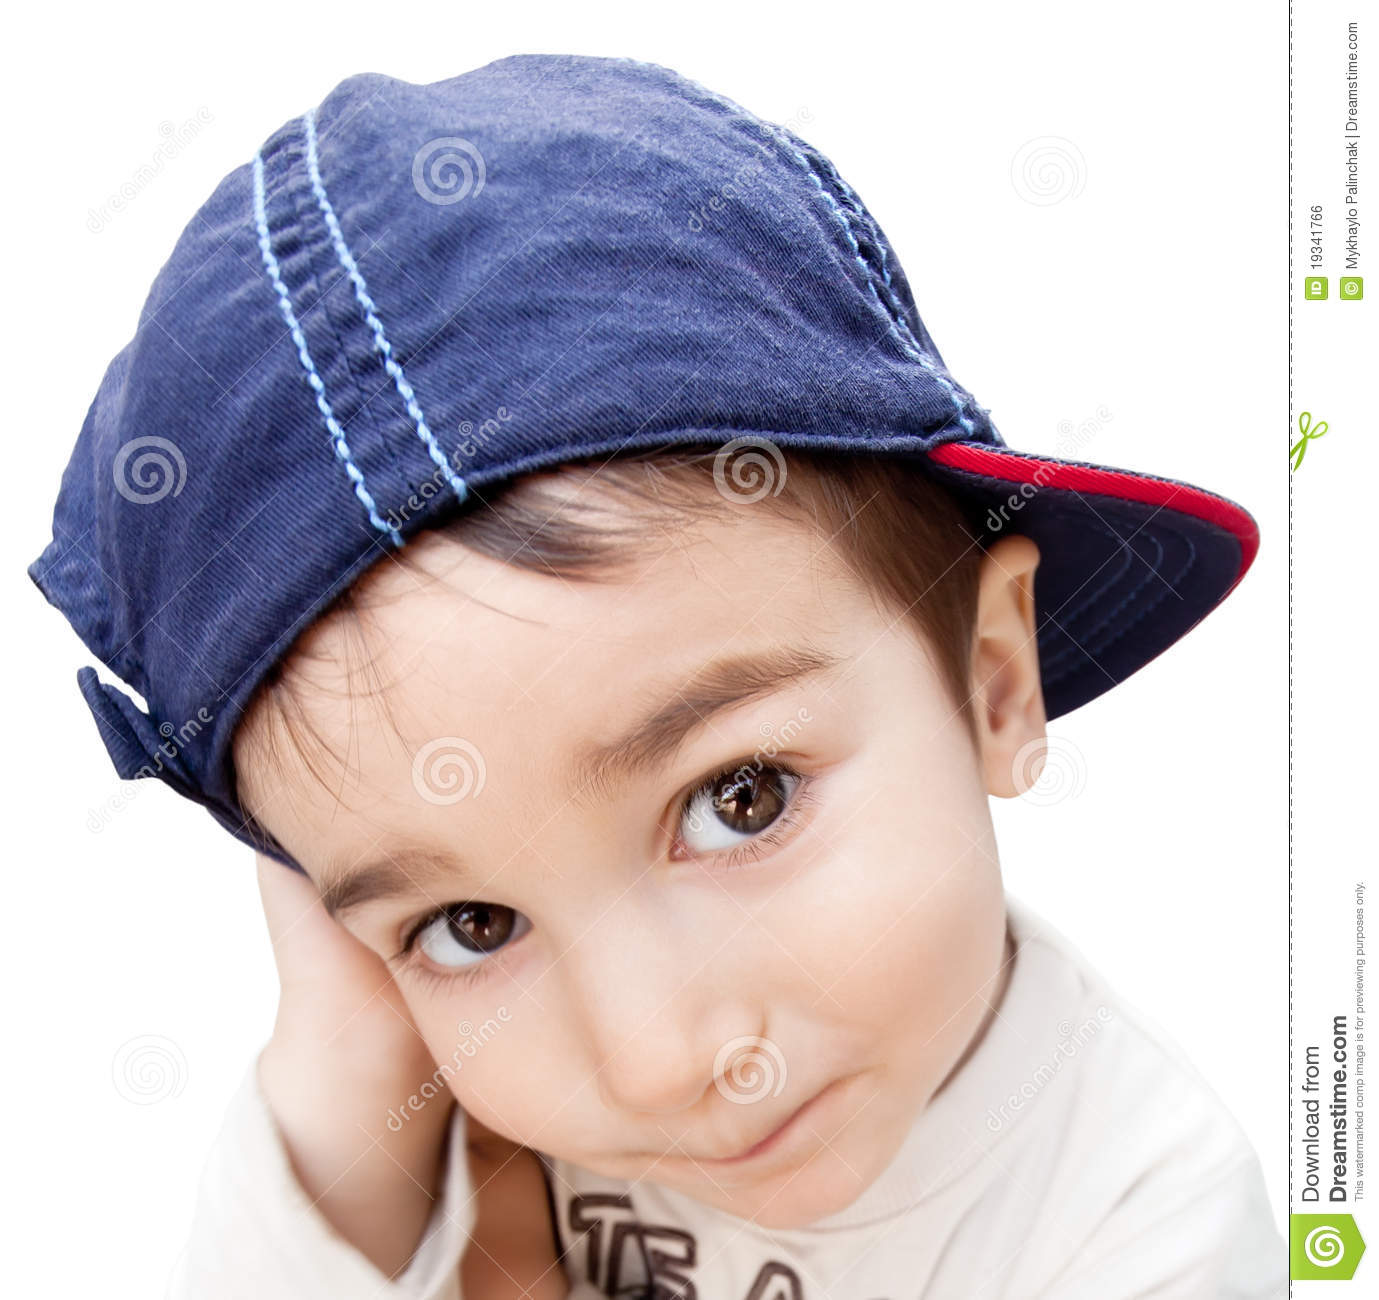 Premium hats for boys are available in a range of designs, from classic visors that are perfect for golf, tennis or fishing with Mom or Dad, warm beanies that will keep him warm on that long walk to school through a winter wonderland, and classic ball cap designs that are ideal for both casual and athletic wear.